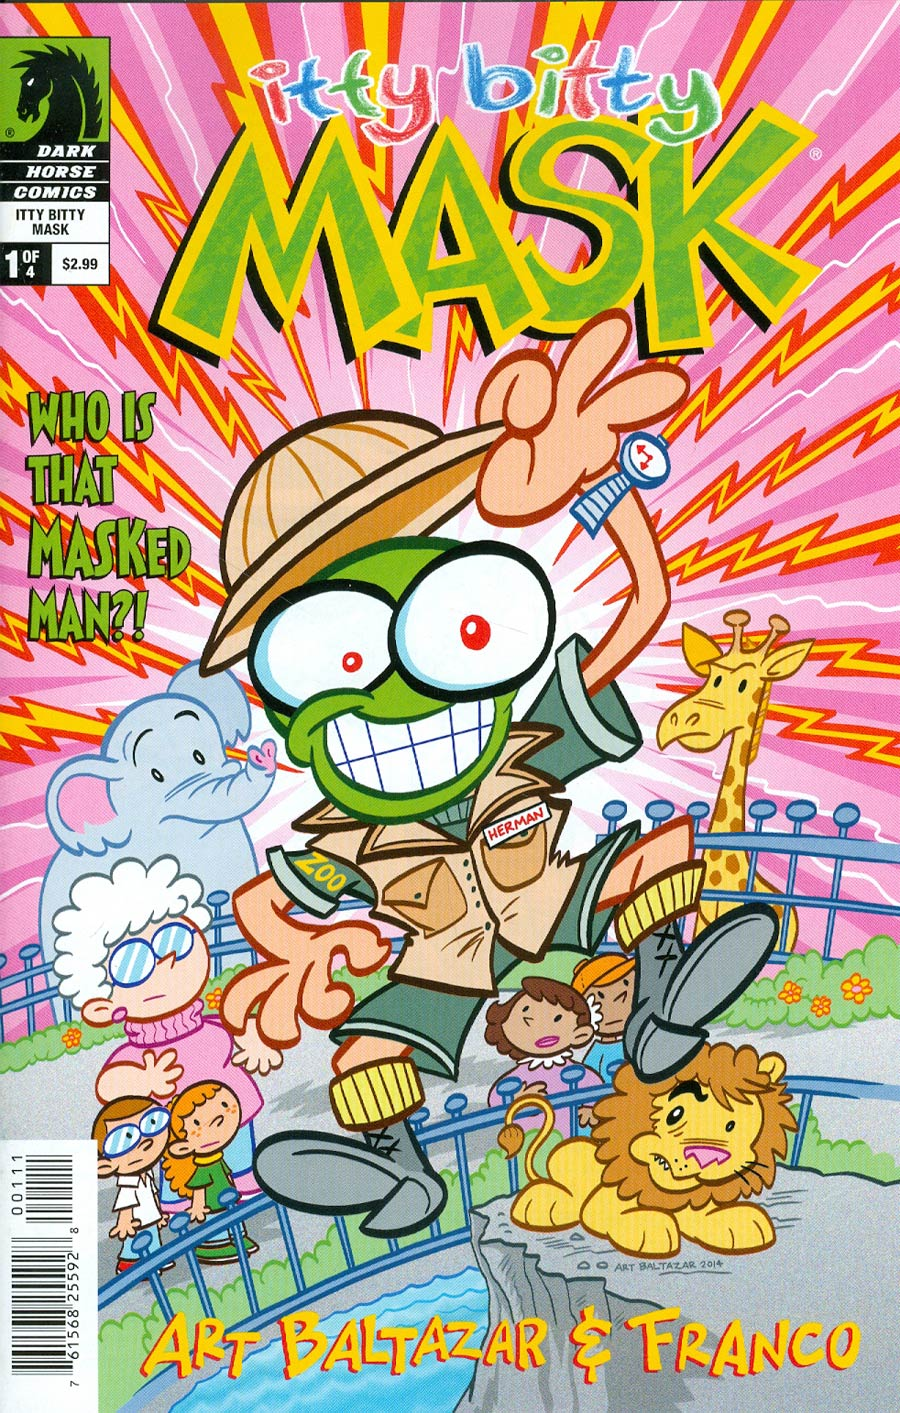 Itty Bitty Comics The Mask #1